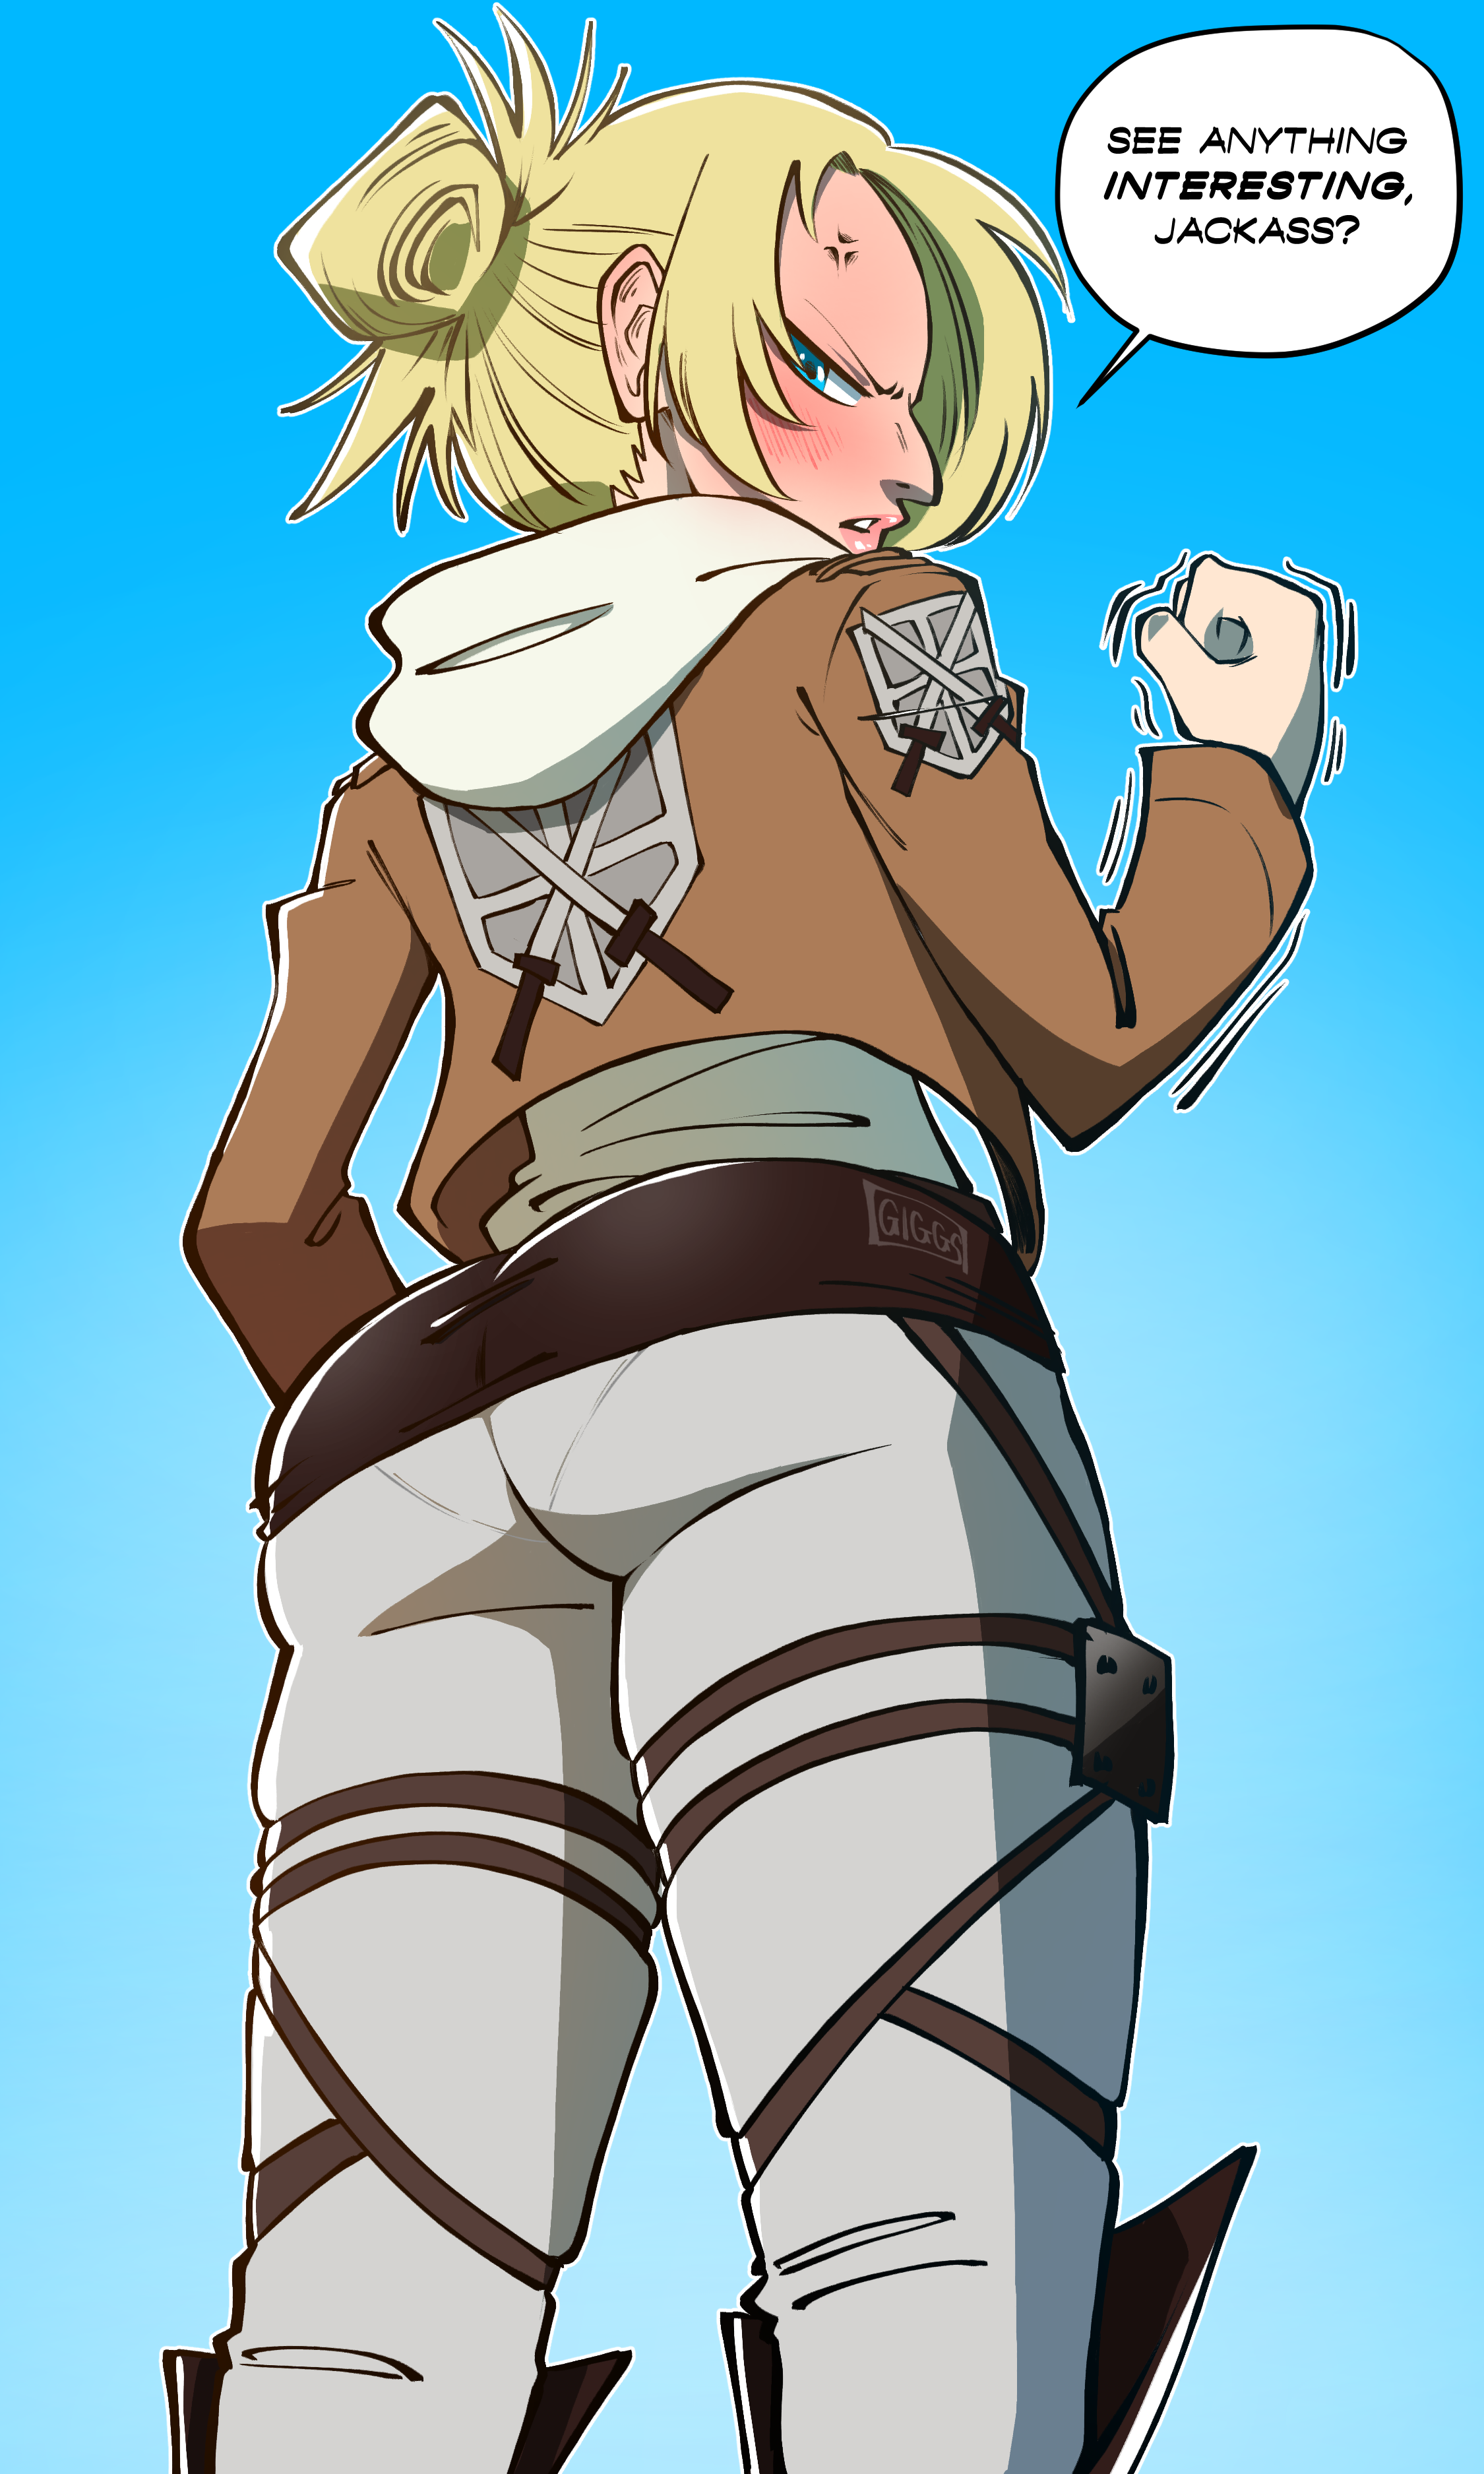 Annie with the fanny - Attack on Titan